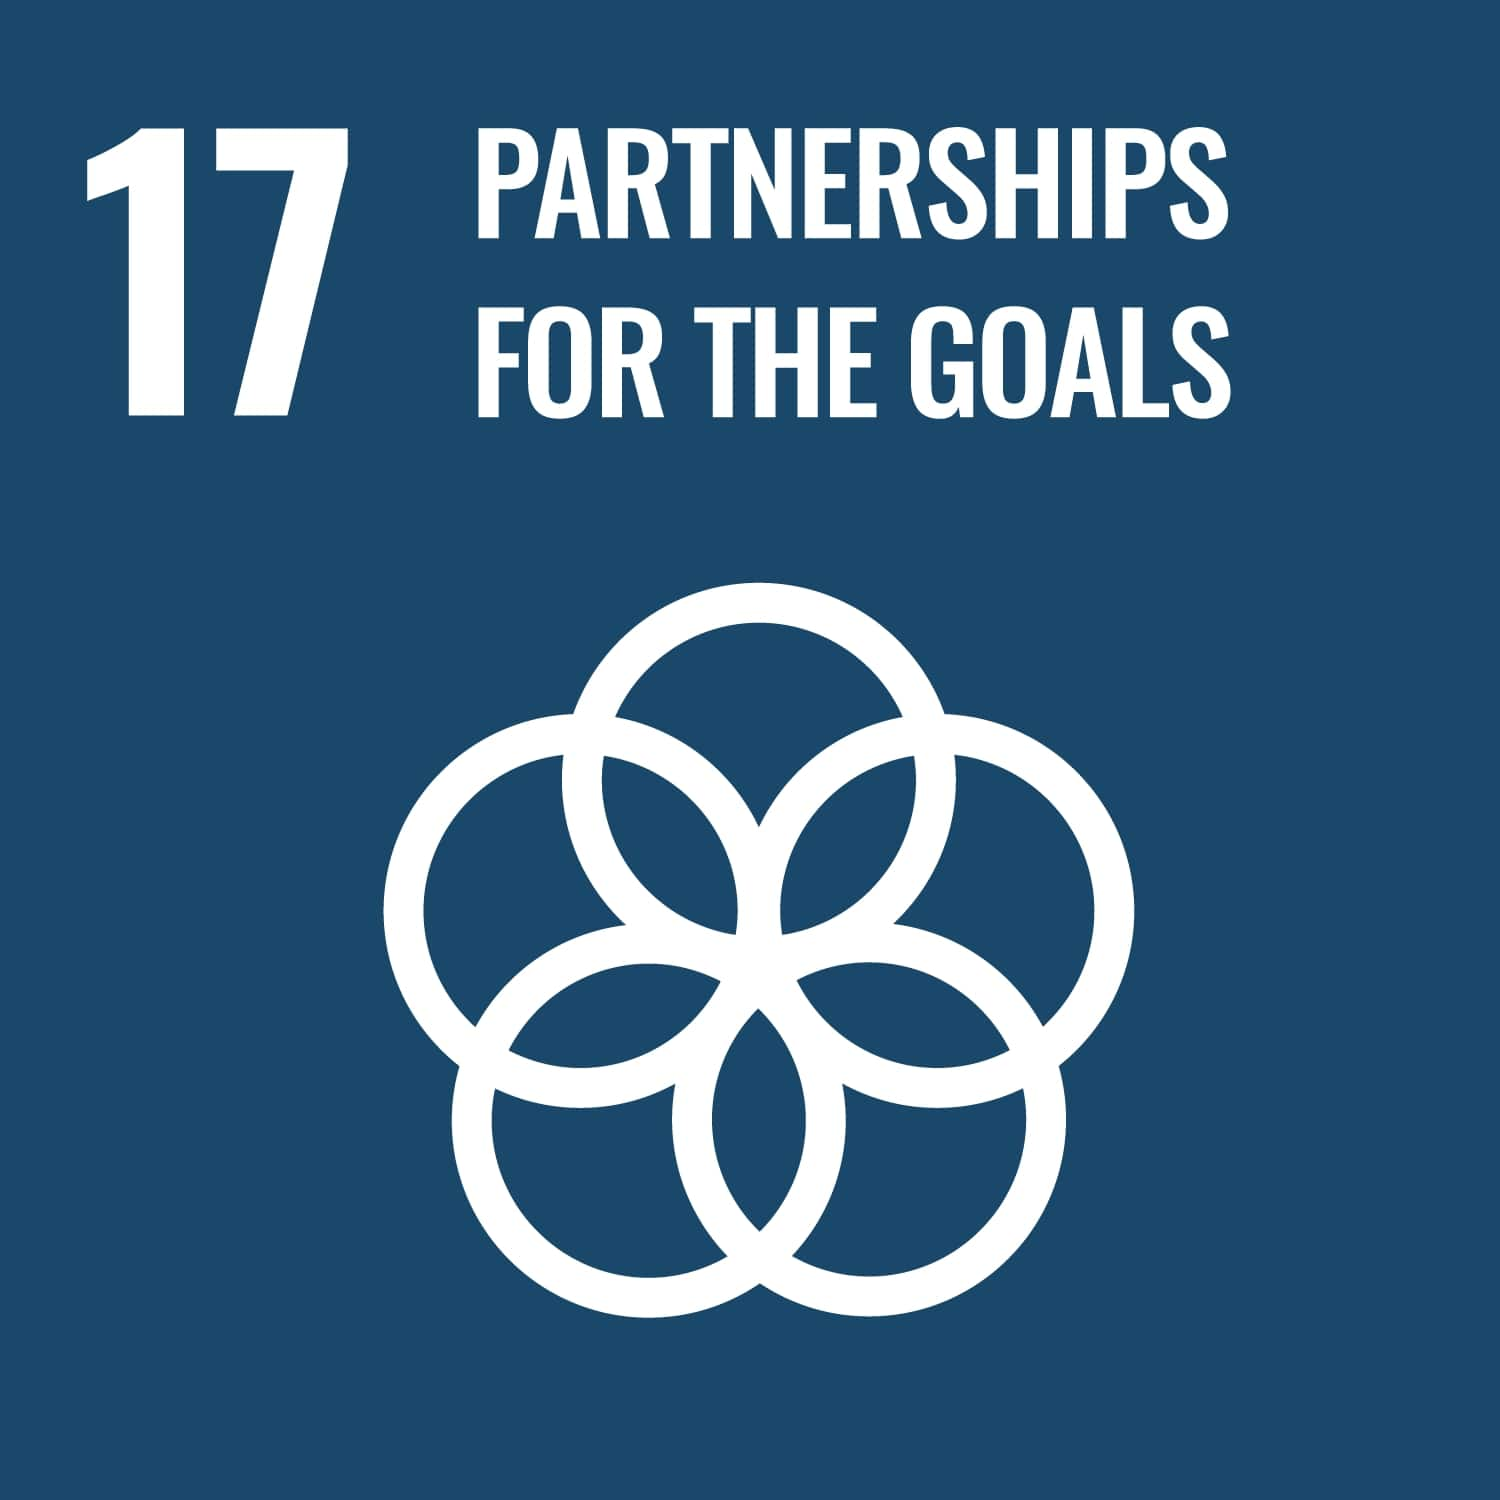 UN logo for partnerships for the goals